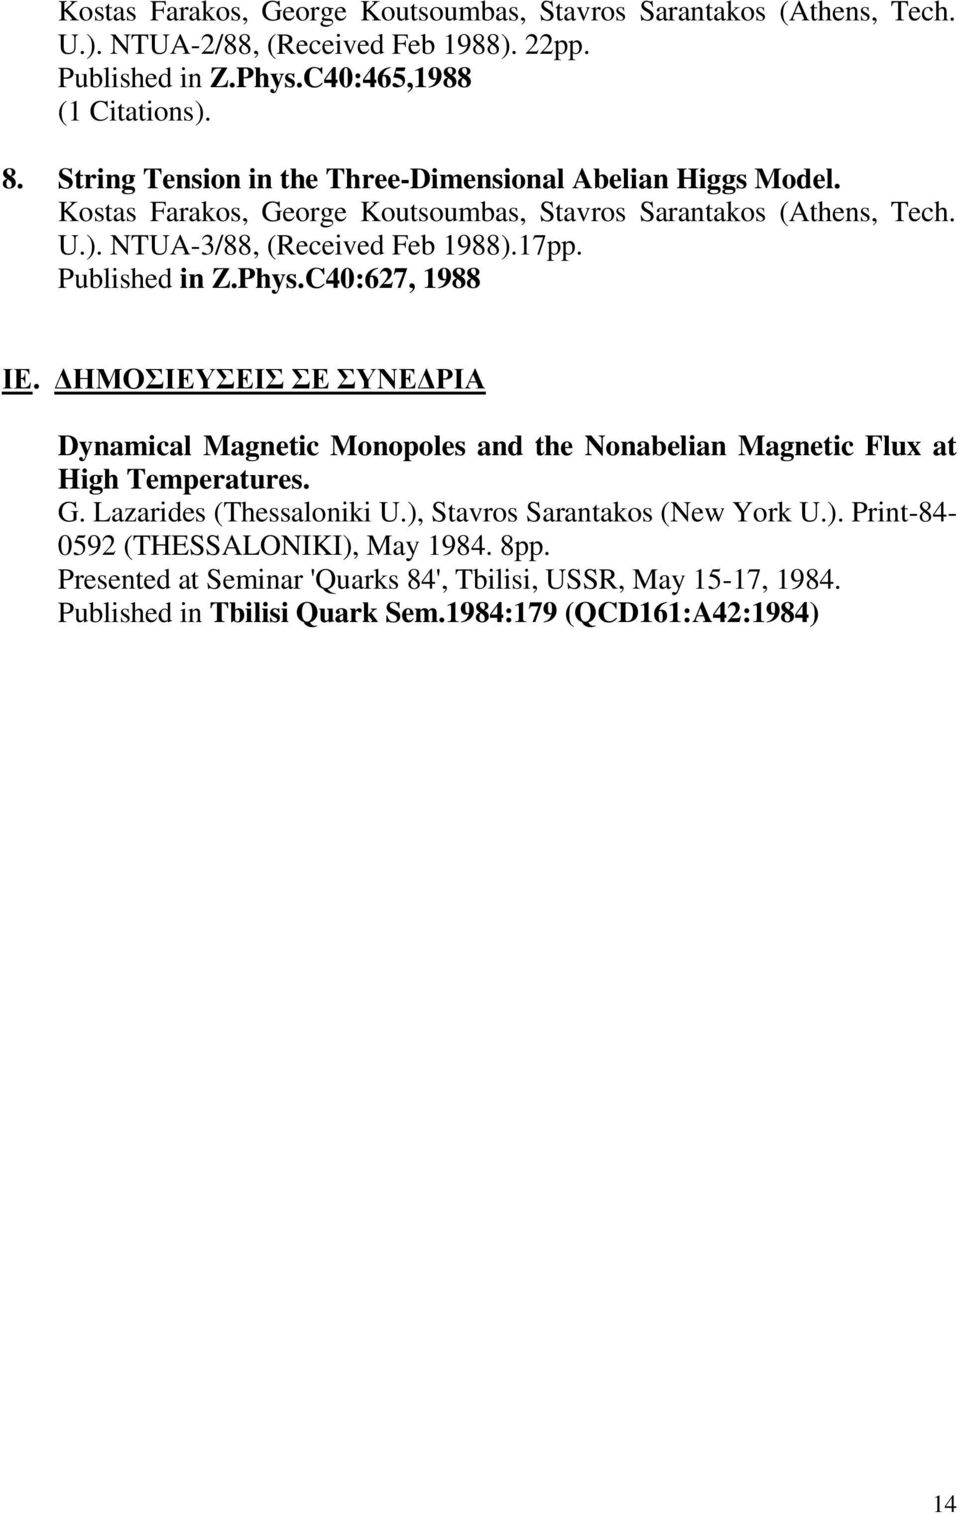 Published in Z.Phys.C40:627, 1988 ΙΕ. ΔΗΜΟΣΙΕΥΣΕΙΣ ΣΕ ΣΥΝΕΔΡΙΑ Dynamical Magnetic Monopoles and the Nonabelian Magnetic Flux at High Temperatures. G. Lazarides (Thessaloniki U.